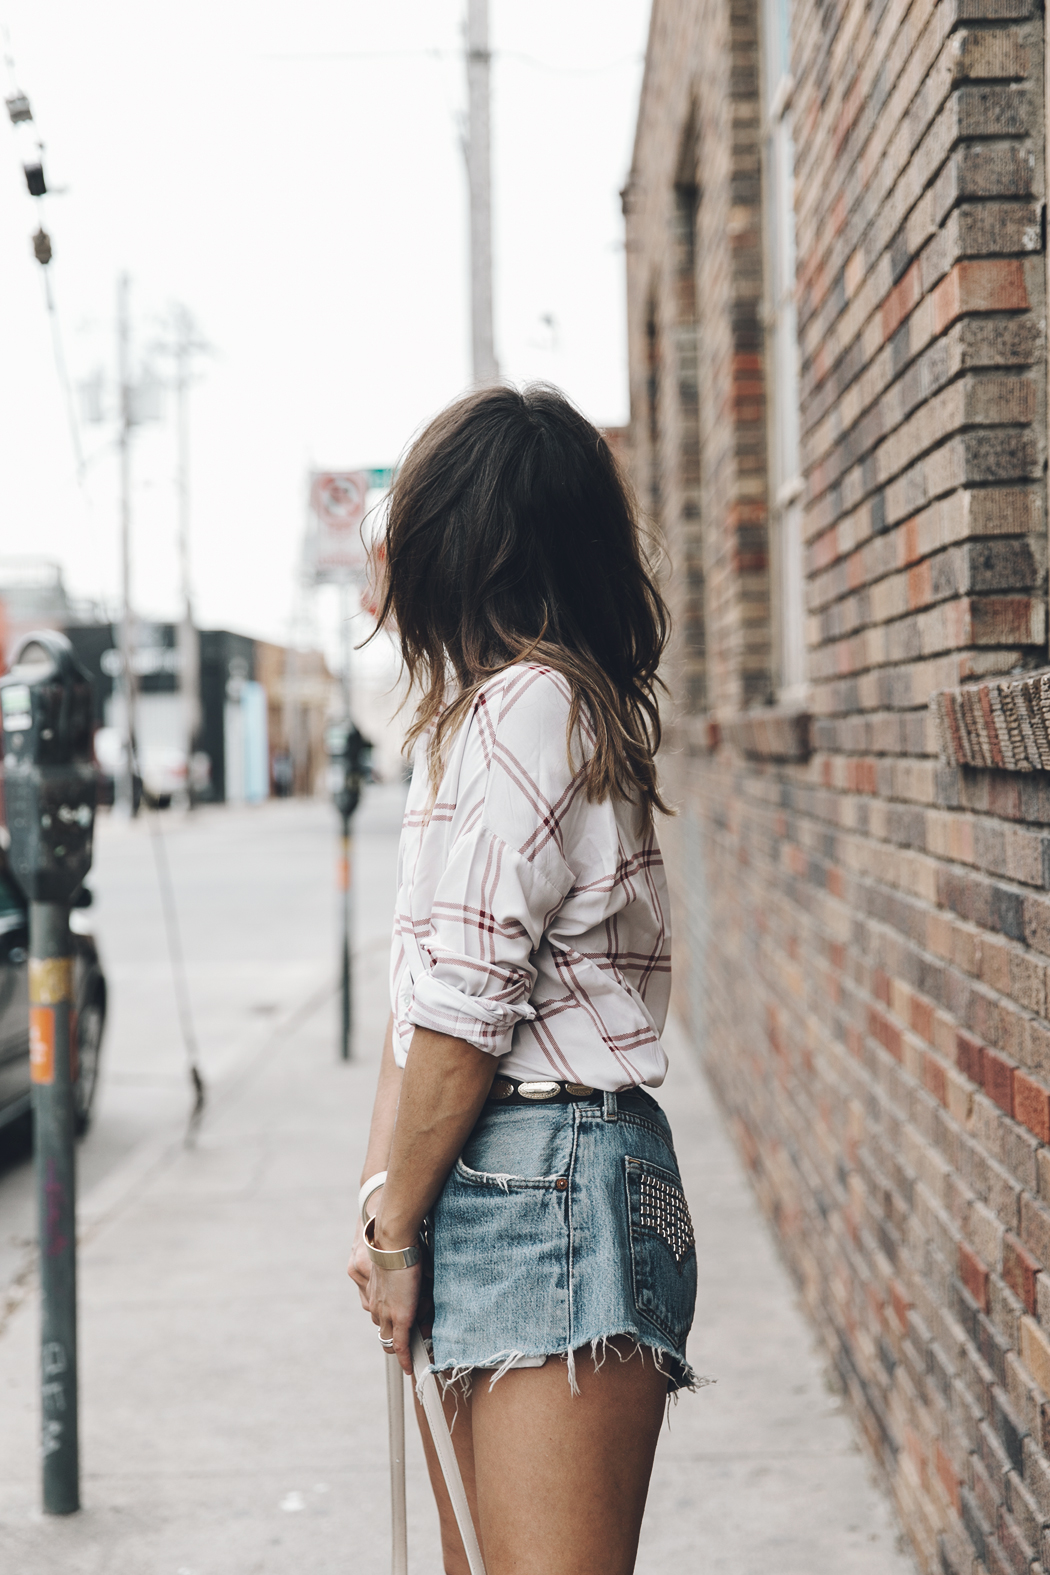 Goodnight_Macaroon-Levis_VIntage-Checked_Blouse-Pink_Shirt-Red_Heels-Marni_Sandals-Dallas-24